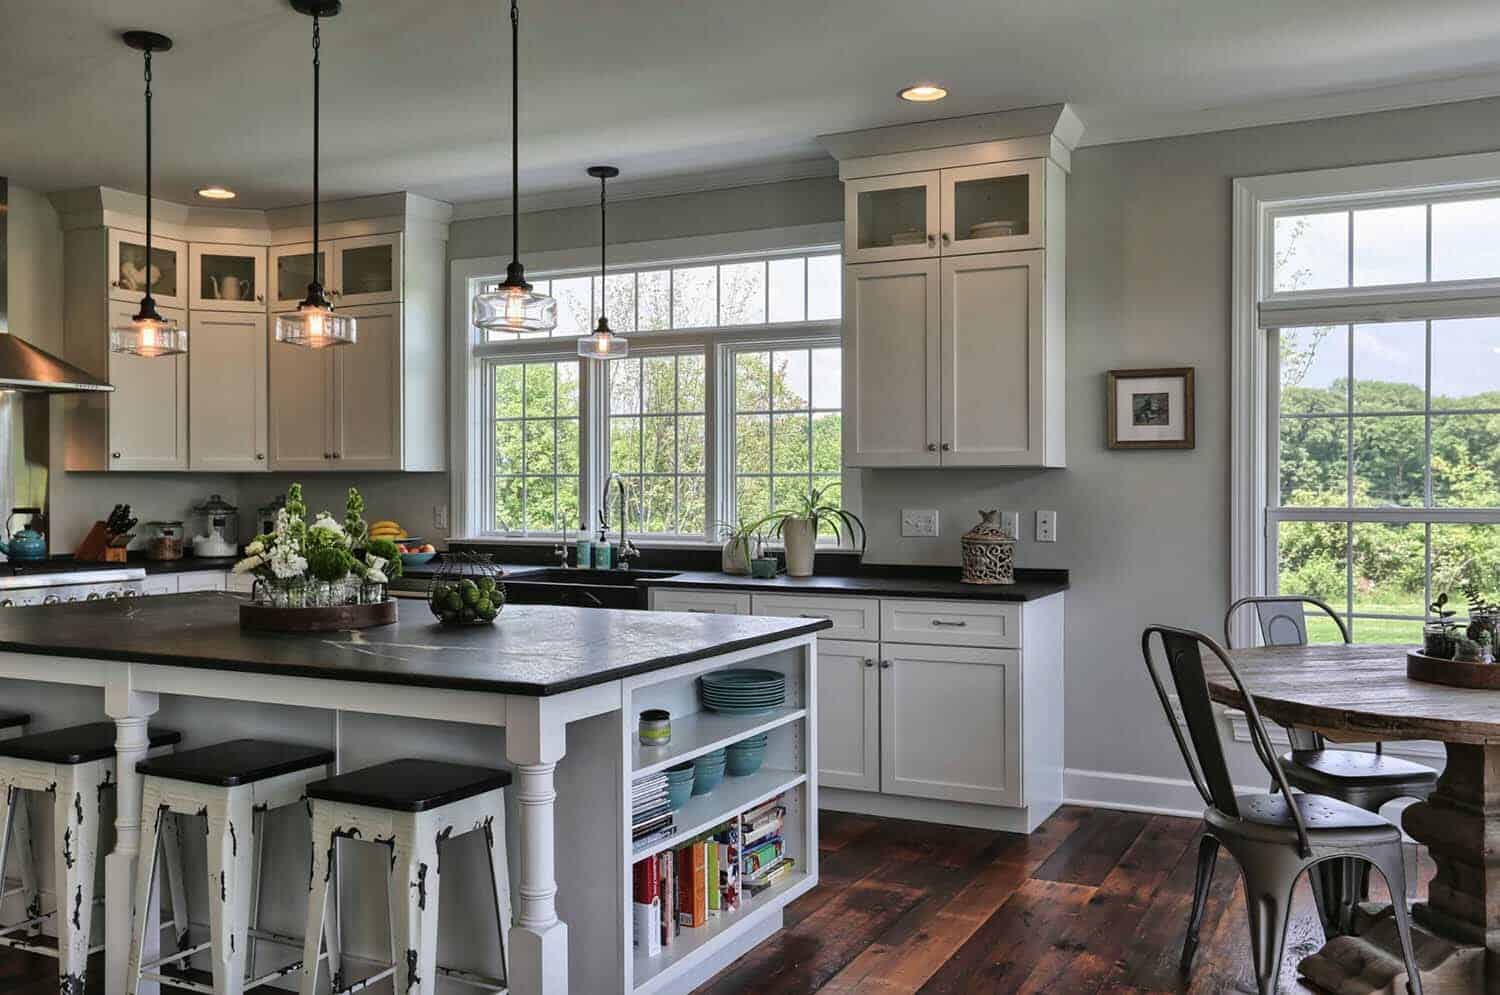 35 Amazingly Creative And Stylish Farmhouse Kitchen Ideas